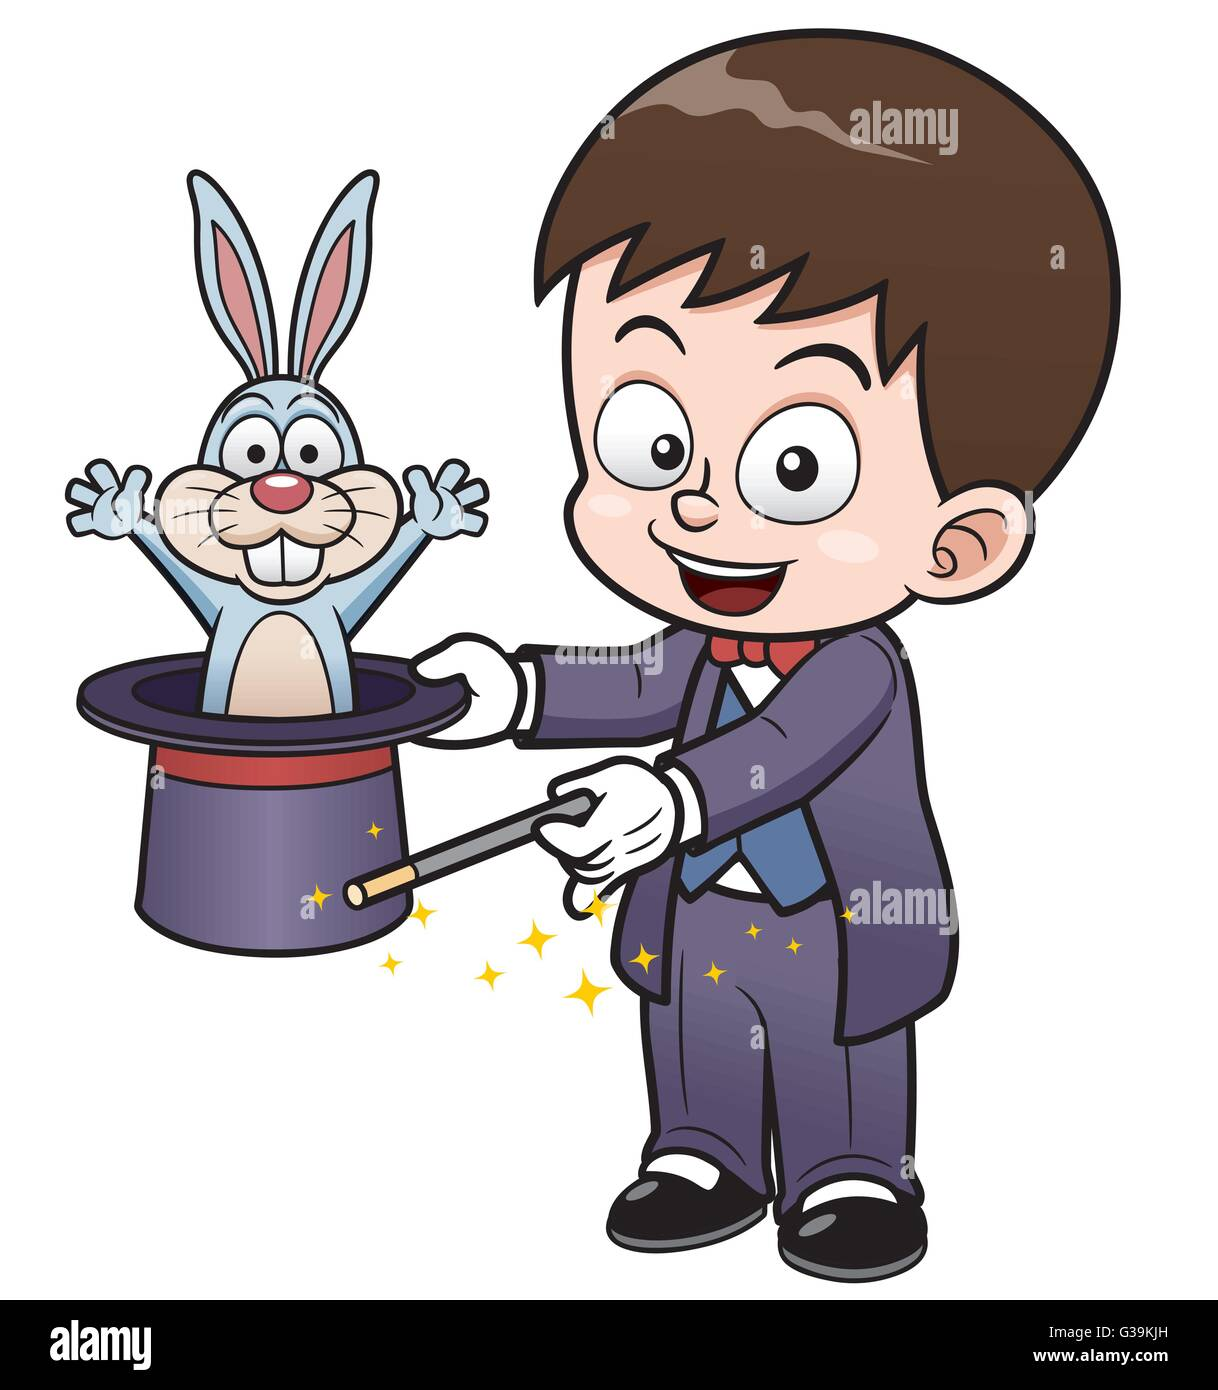 vector illustration of boy magician holding magic hat magic hat clipart black and white magic hat and rabbit clipart